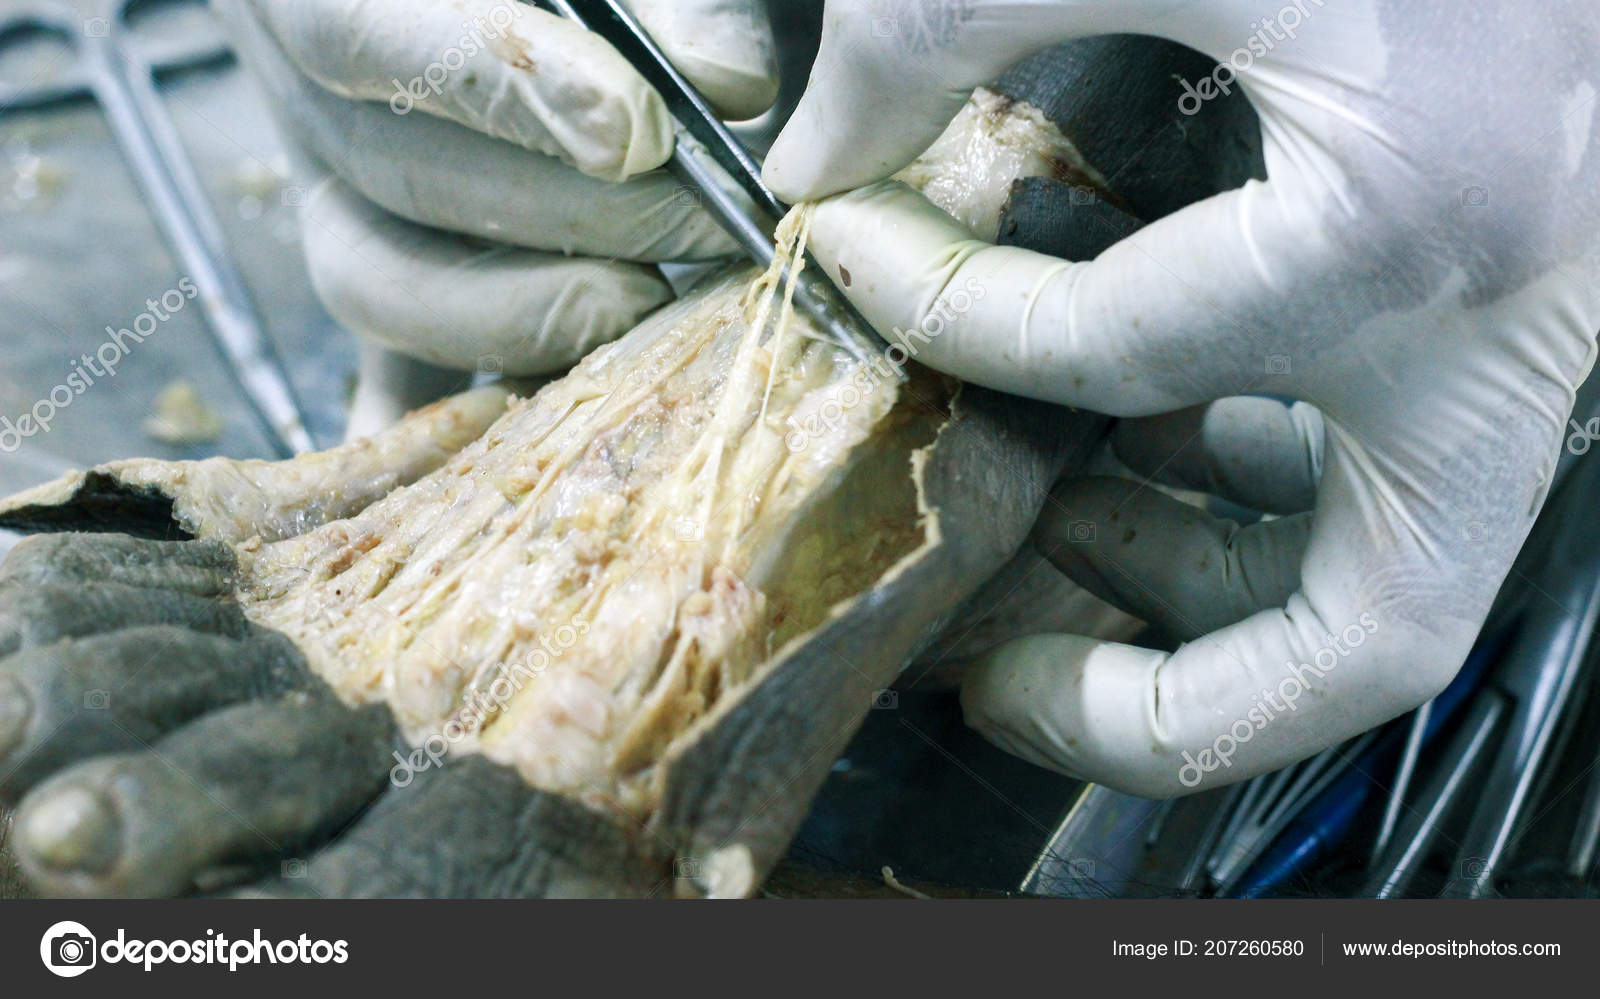 Anatomy Dissection Cadaver Showing Dorsum Foot Using Scalpel ...